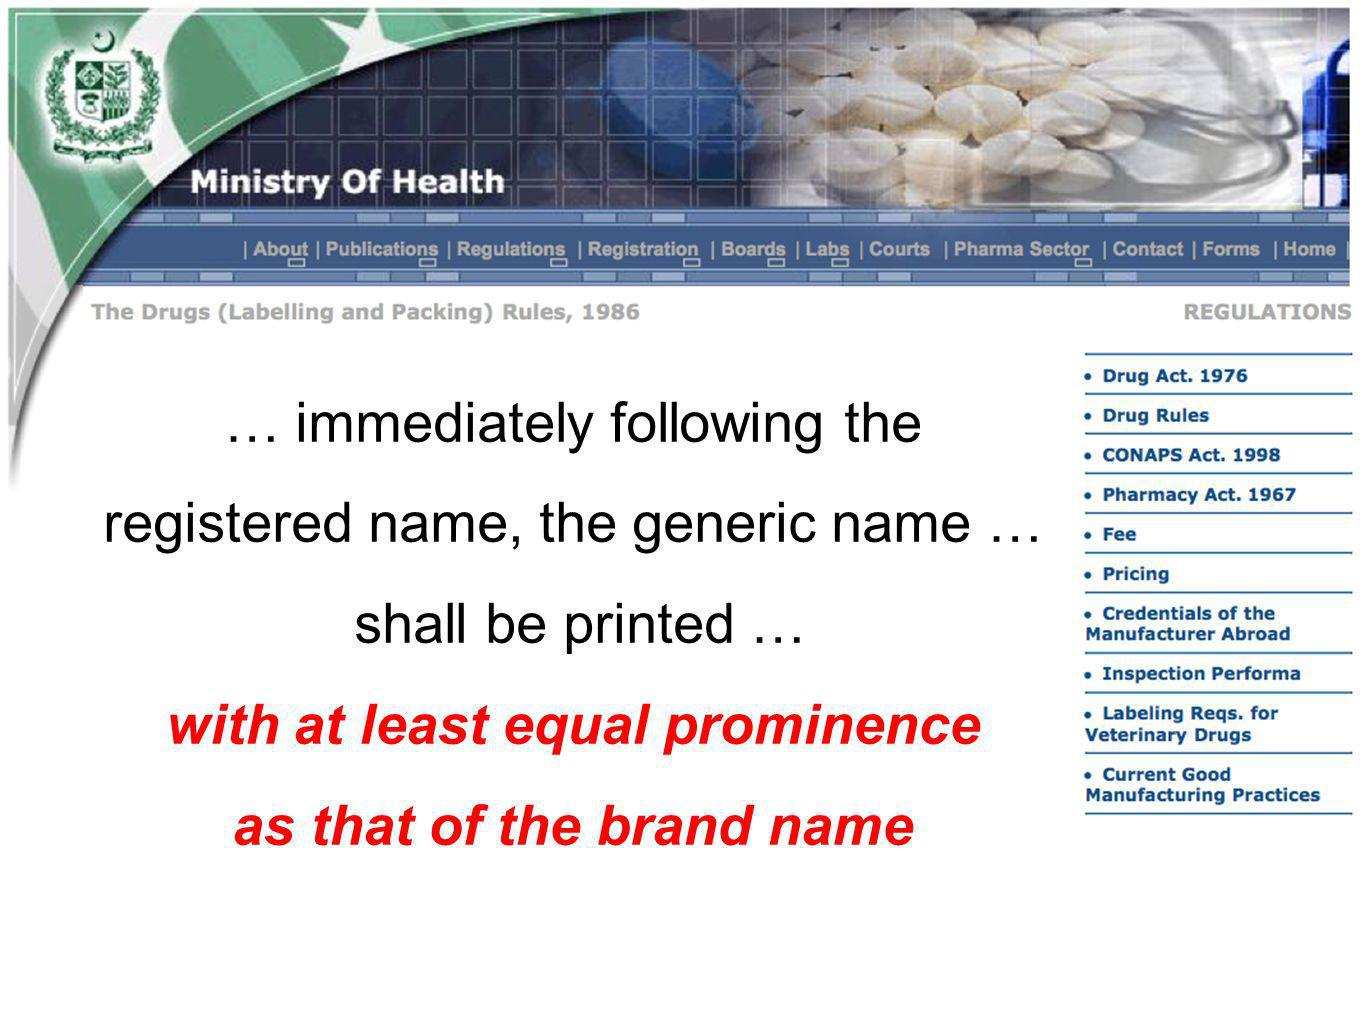 … immediately following the registered name, the generic name … shall be printed … with at least equal prominence as that of the brand name